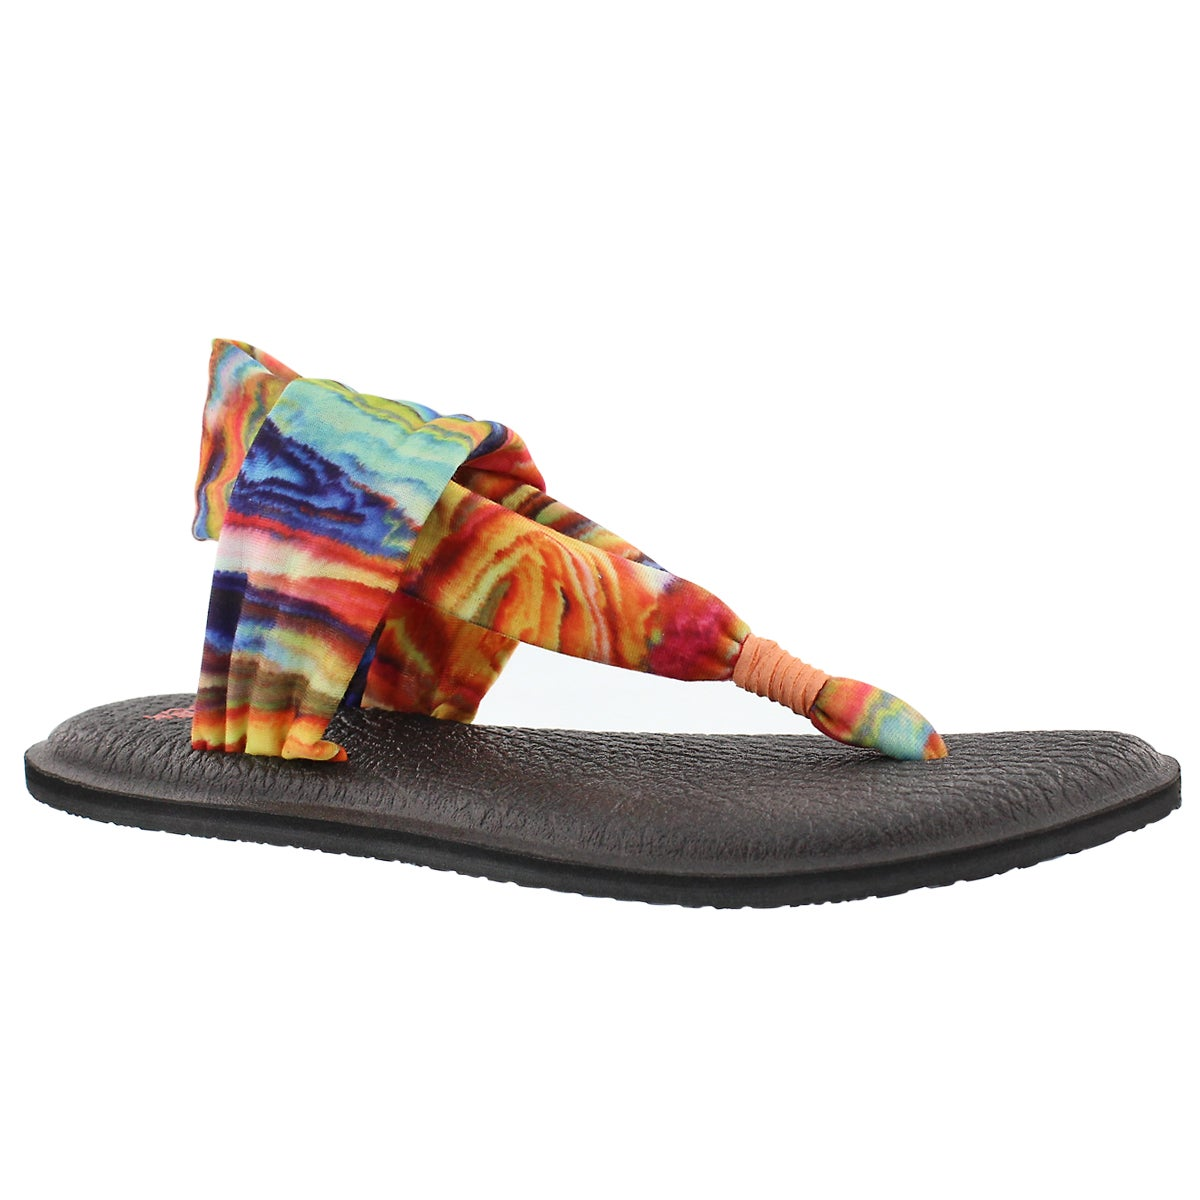 Women's YOGA SLING coral/multi print thongs